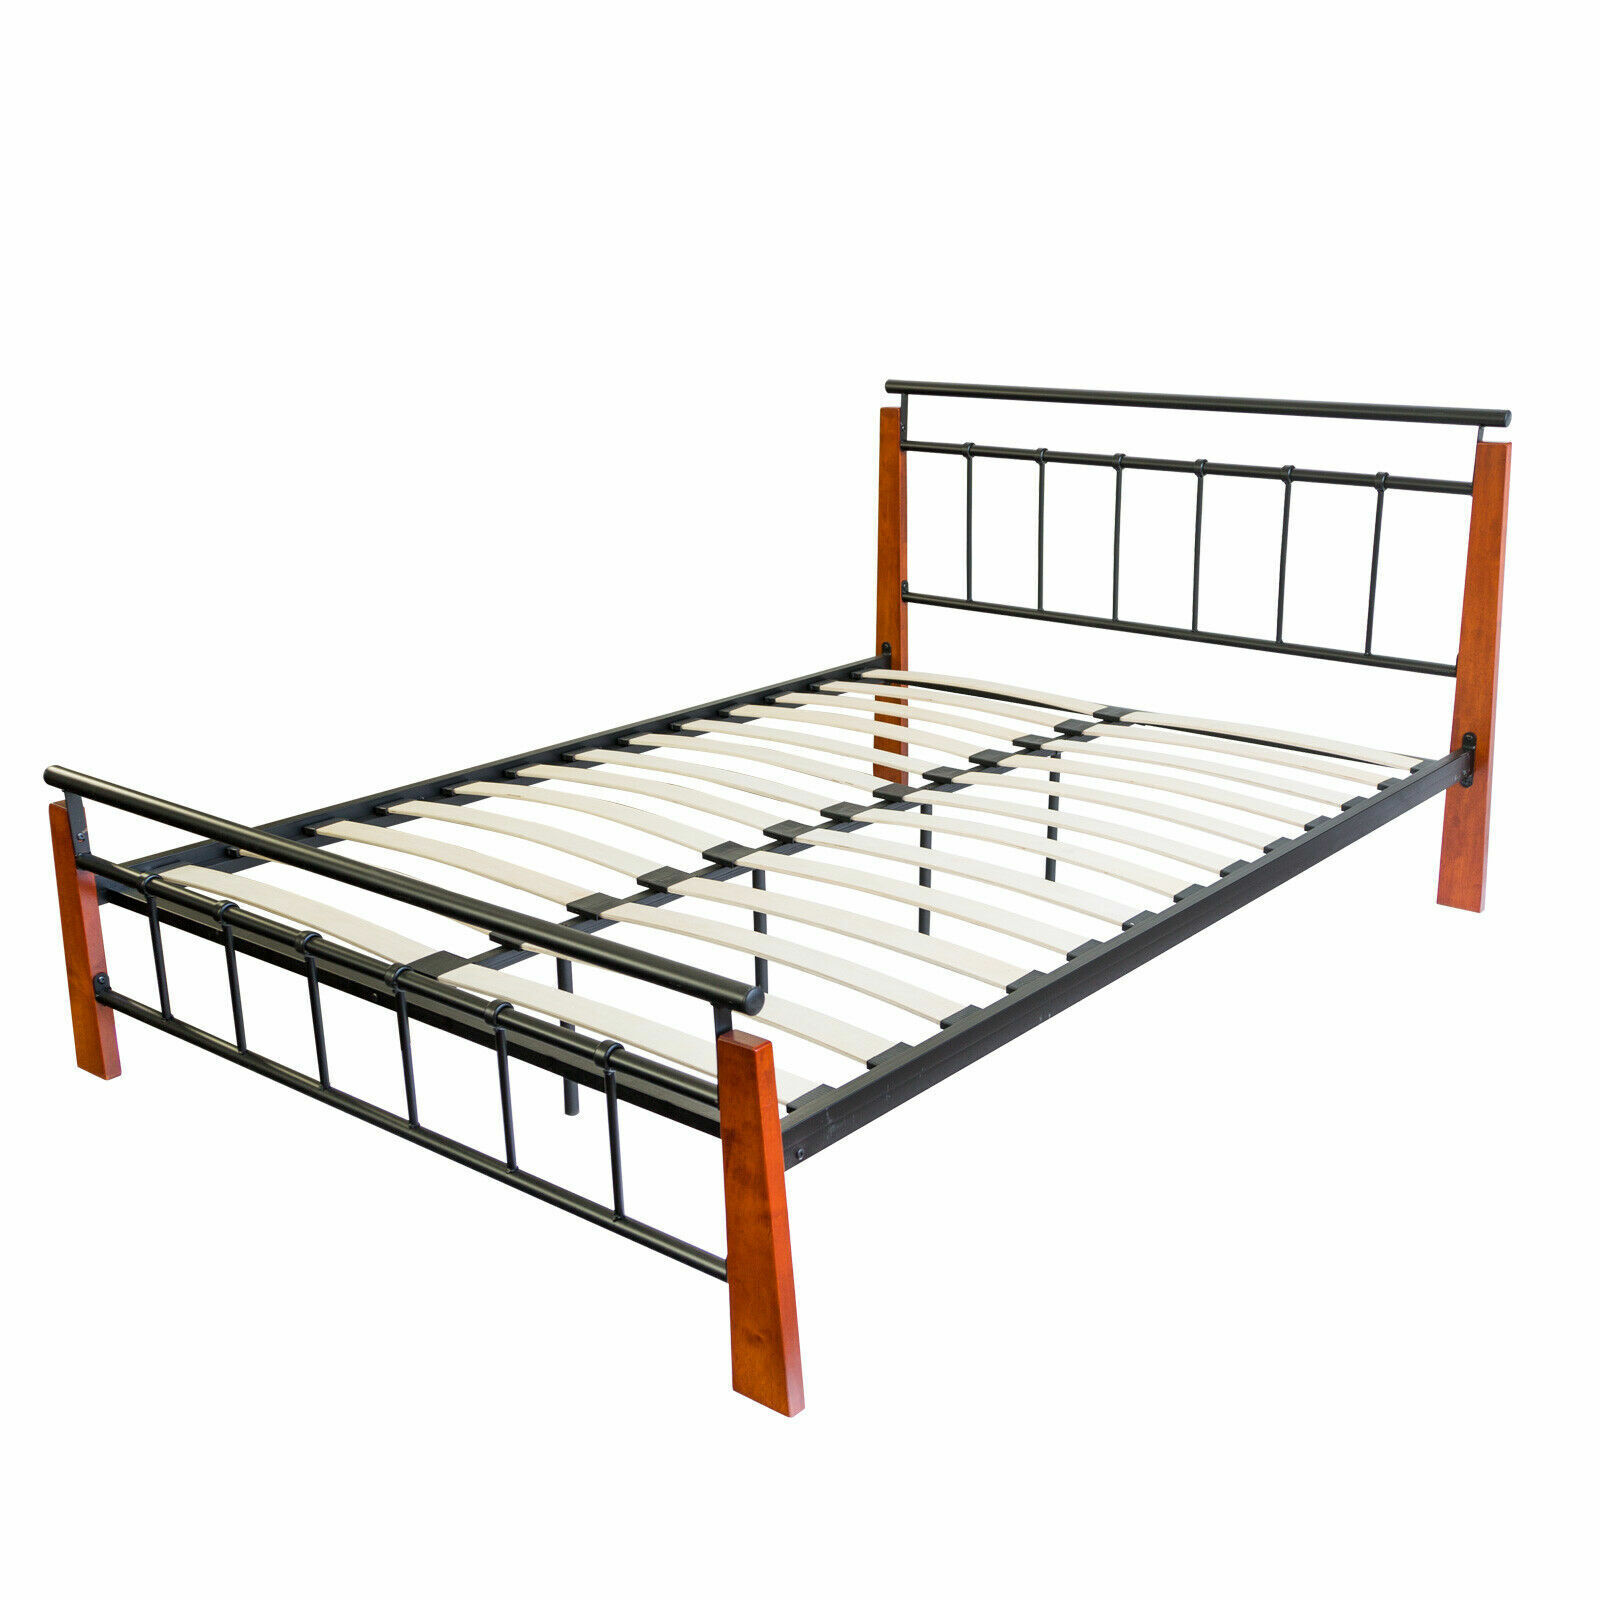 metallbett bett bettgestell doppelbett bettrahmen. Black Bedroom Furniture Sets. Home Design Ideas